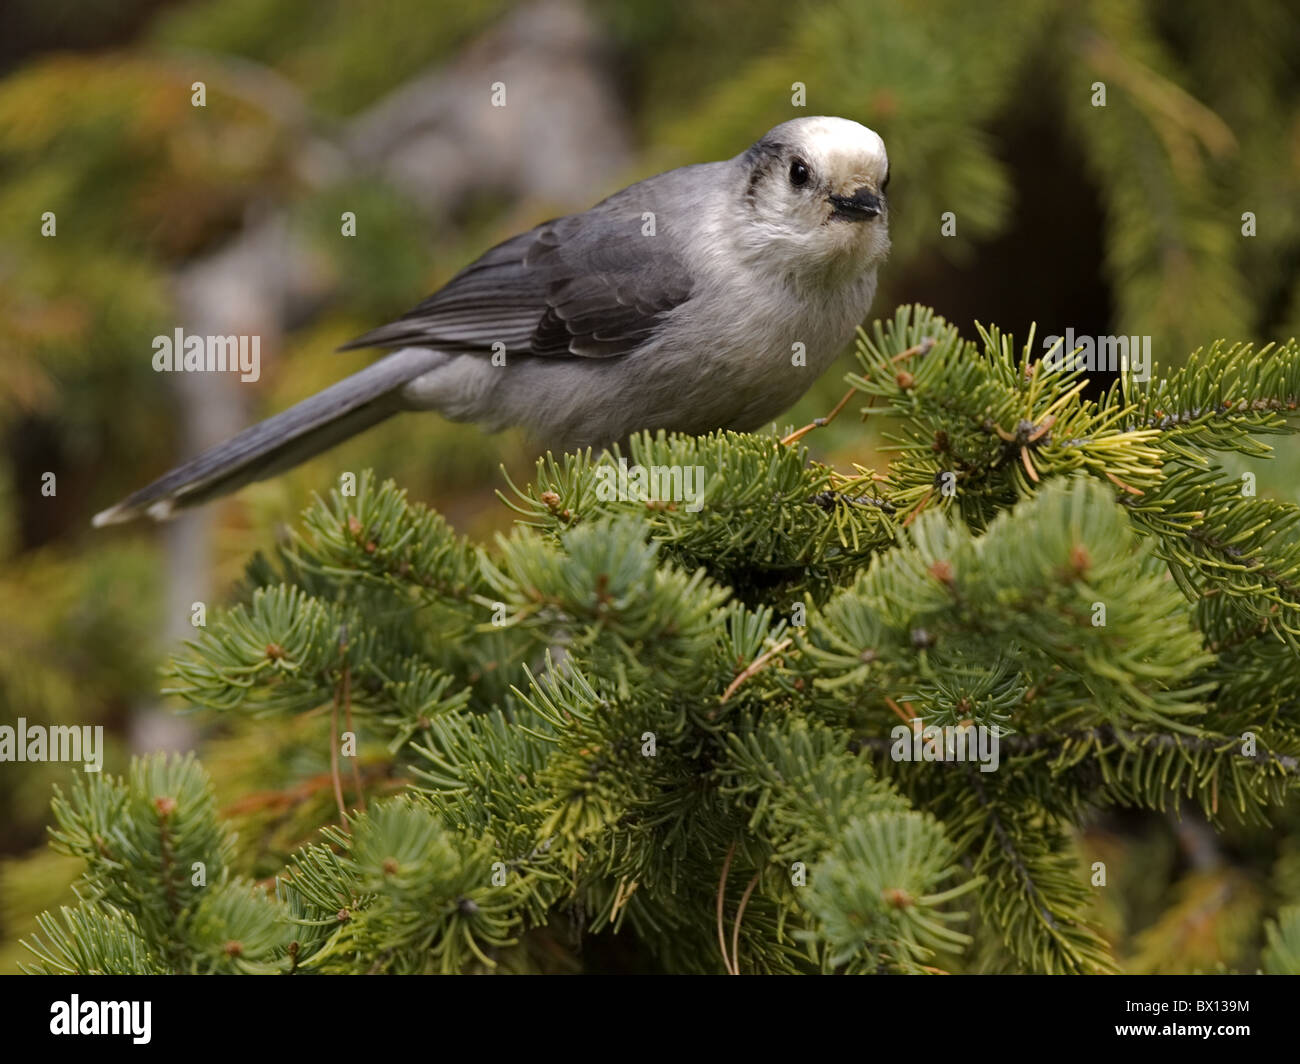 Grey, gray jay perched on conifer - Stock Image